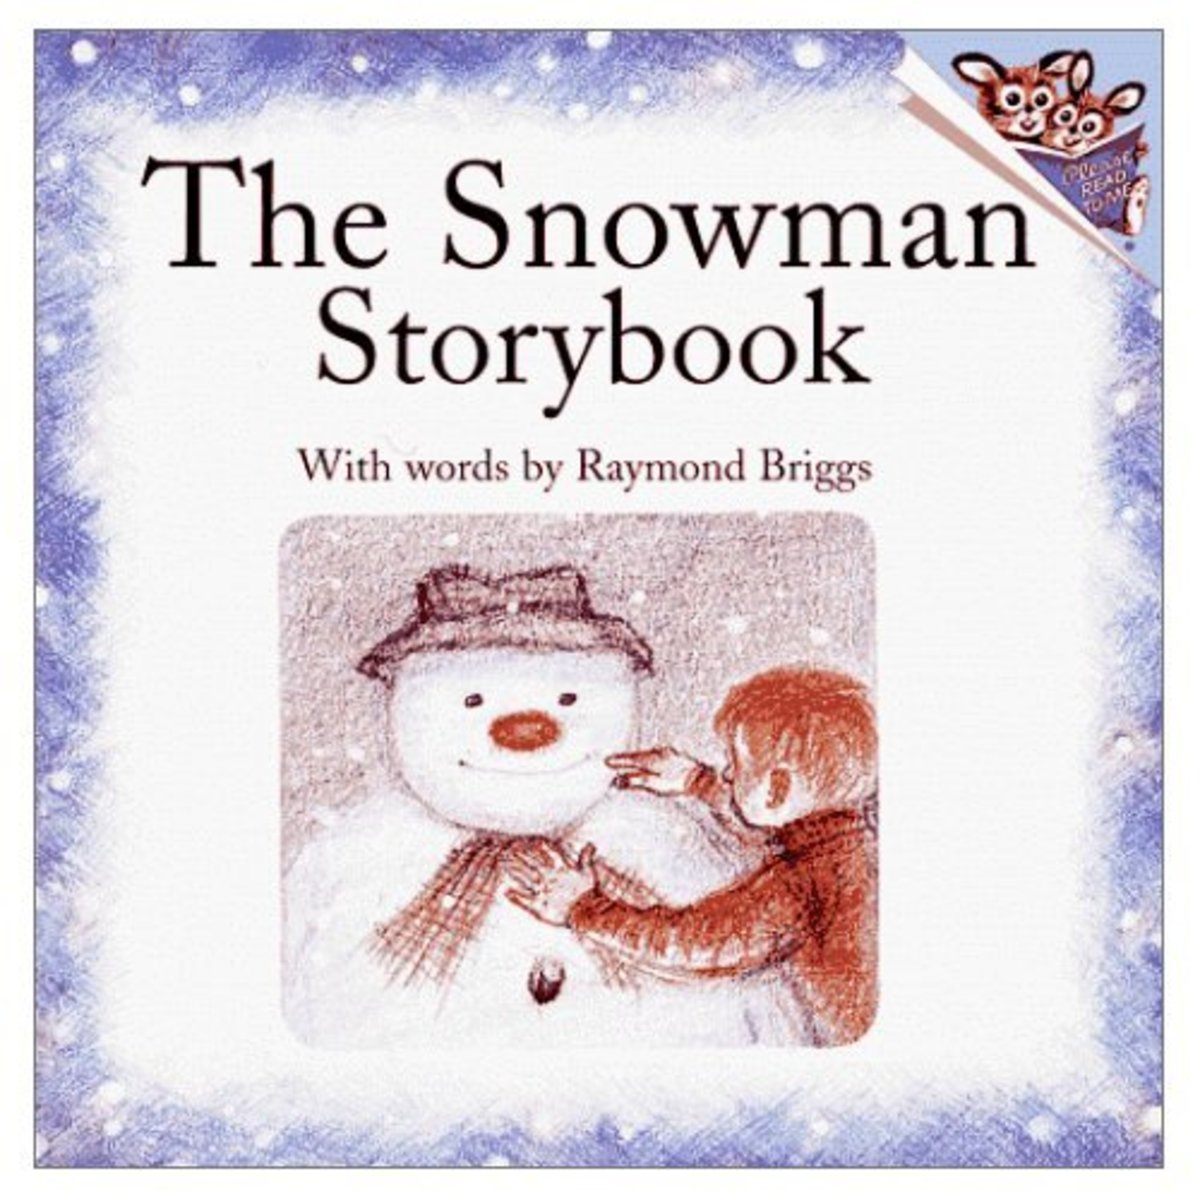 This version of the book The Snowman  has text by Raymond Briggs. Use this book or show the movie for a multimedia experience.